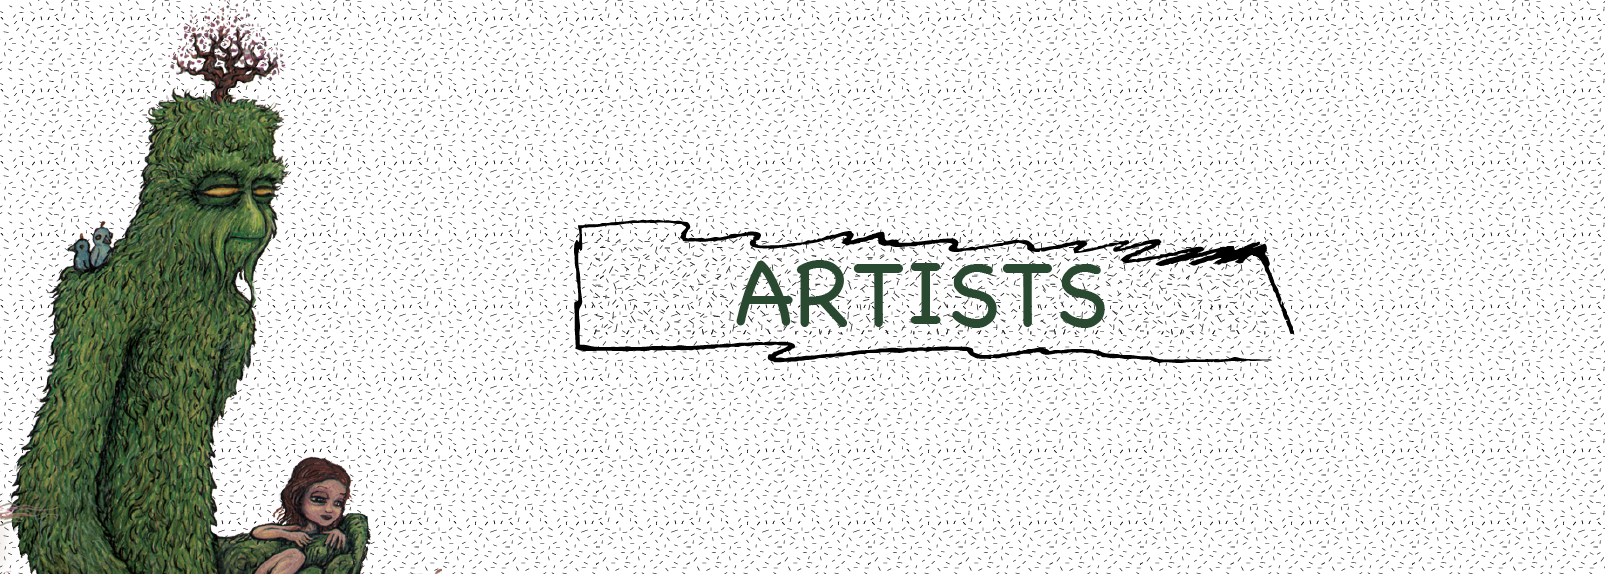 ARTISTS-01.png